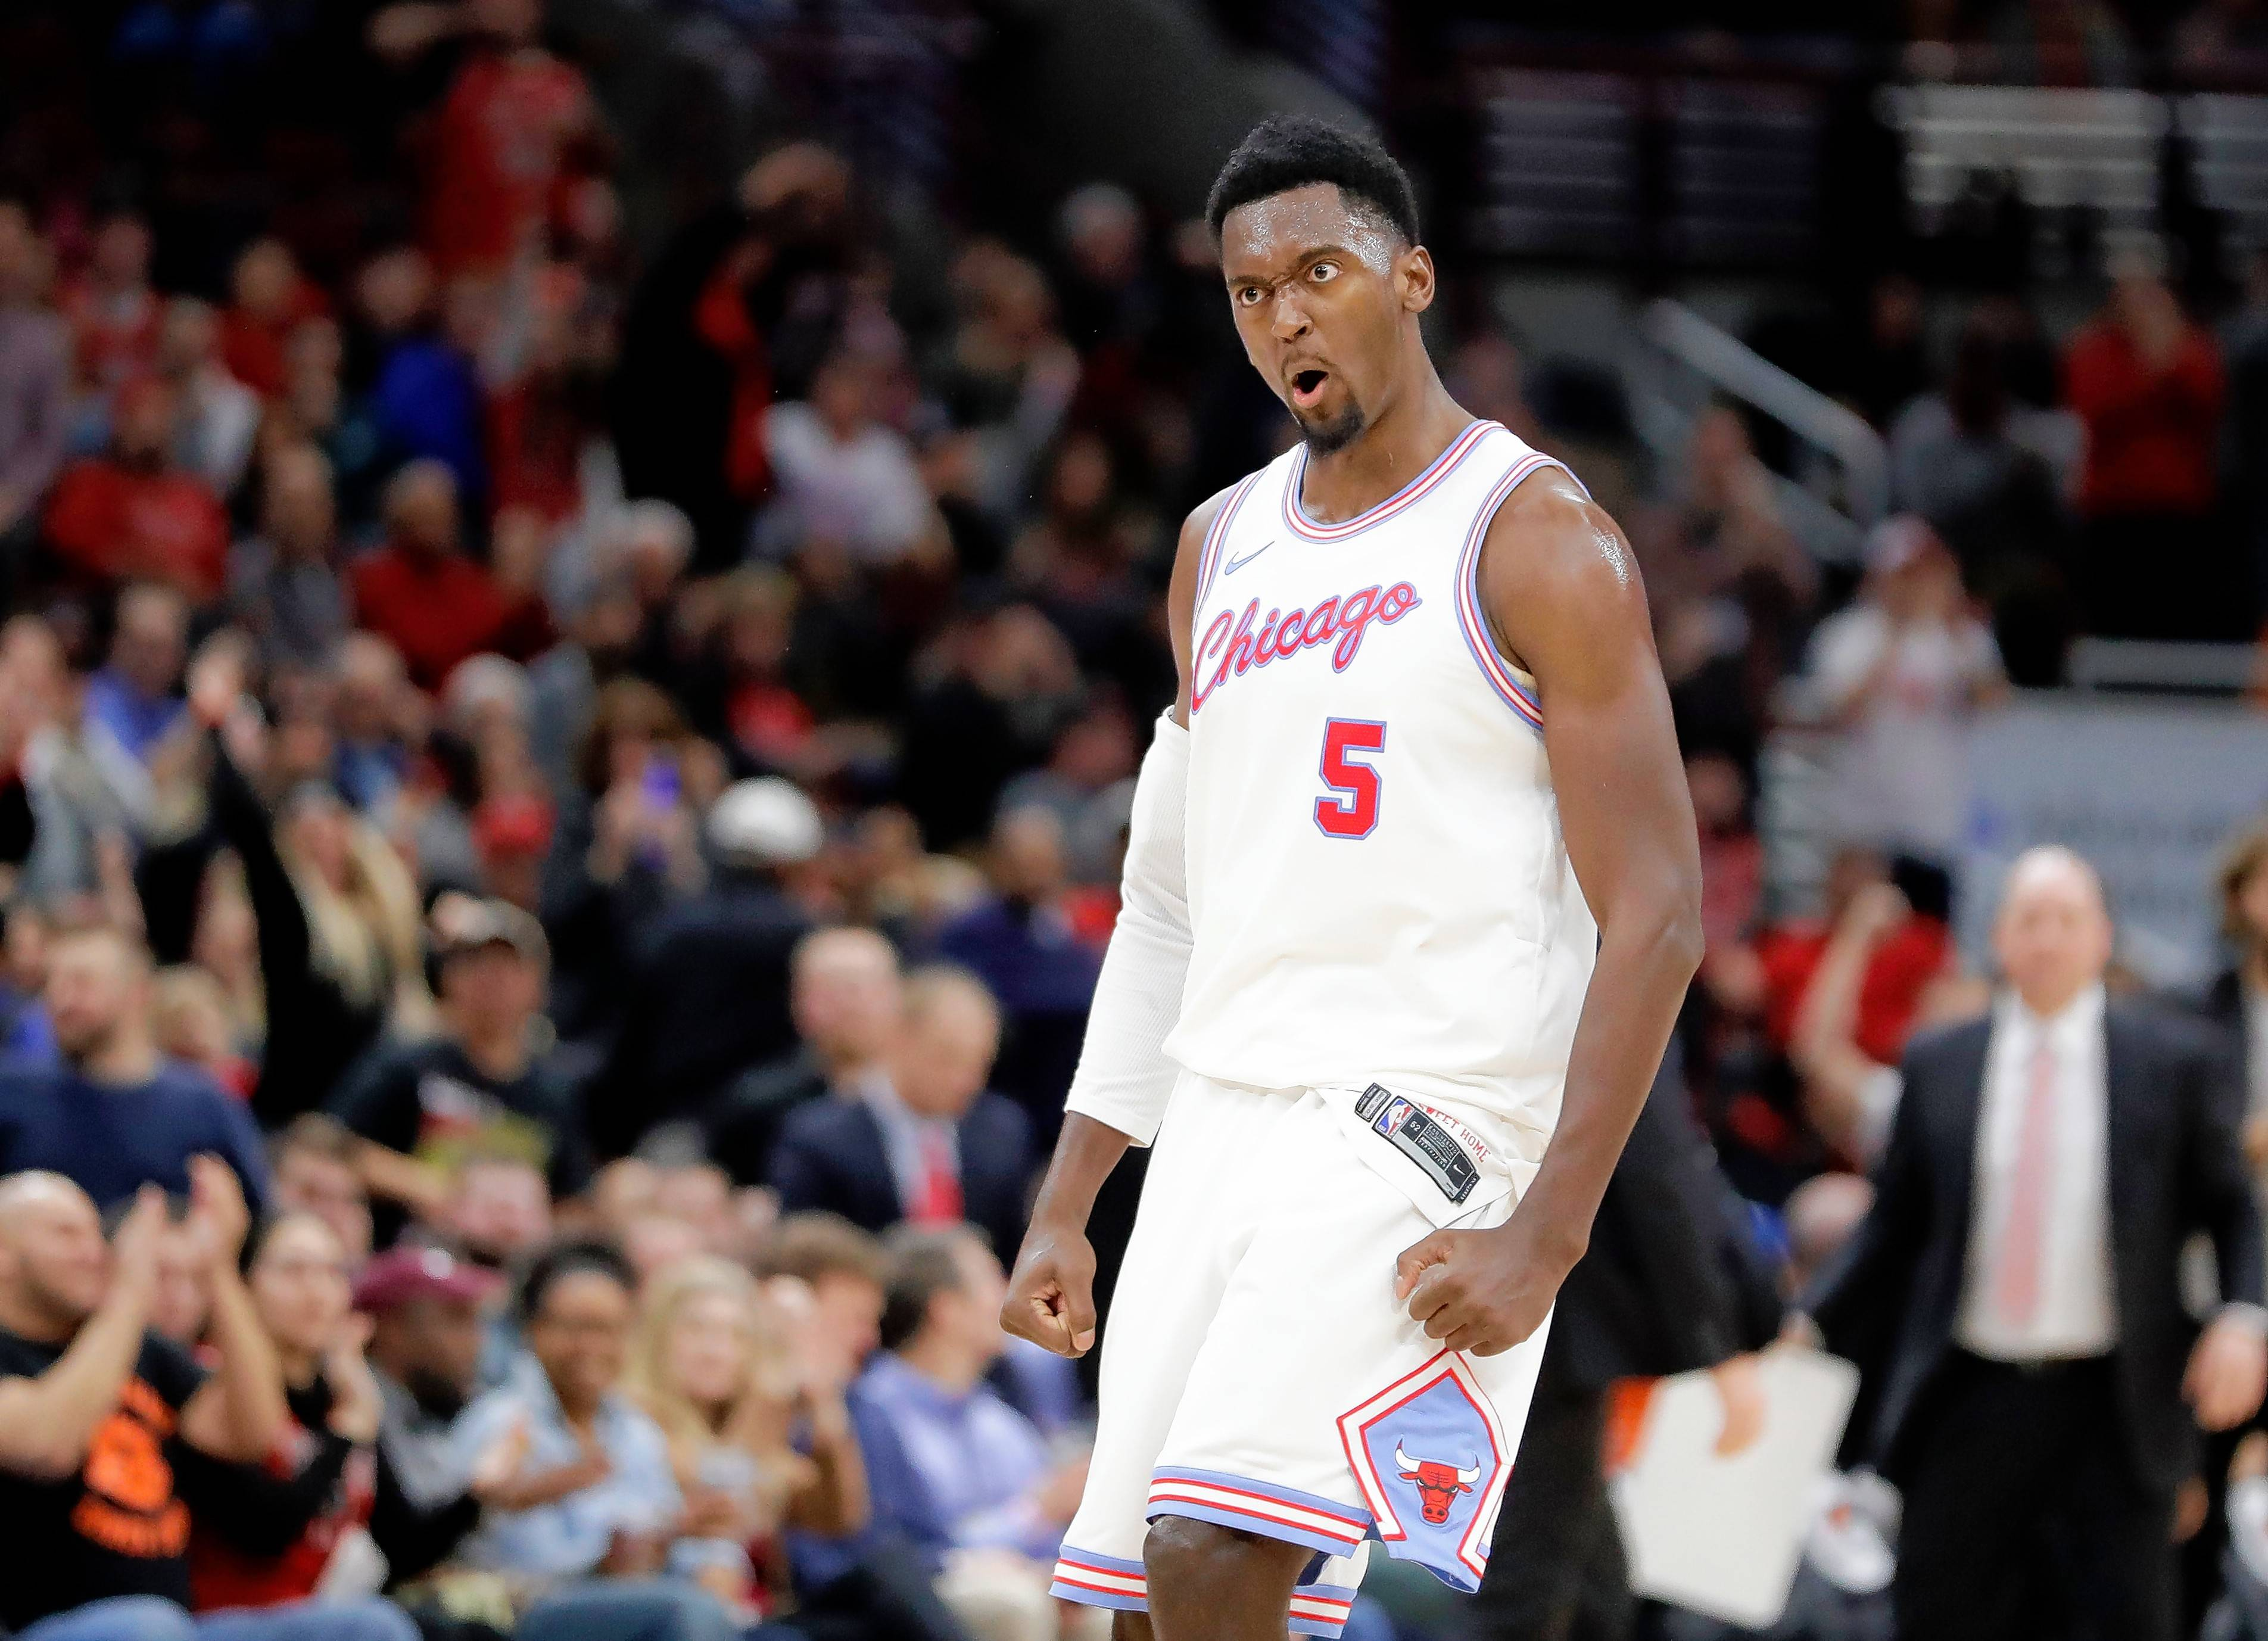 Chicago Bulls' Bobby Portis is expected to start at center on Monday as part of coach Fred Hoiberg's lineup changes for at least the next five games.